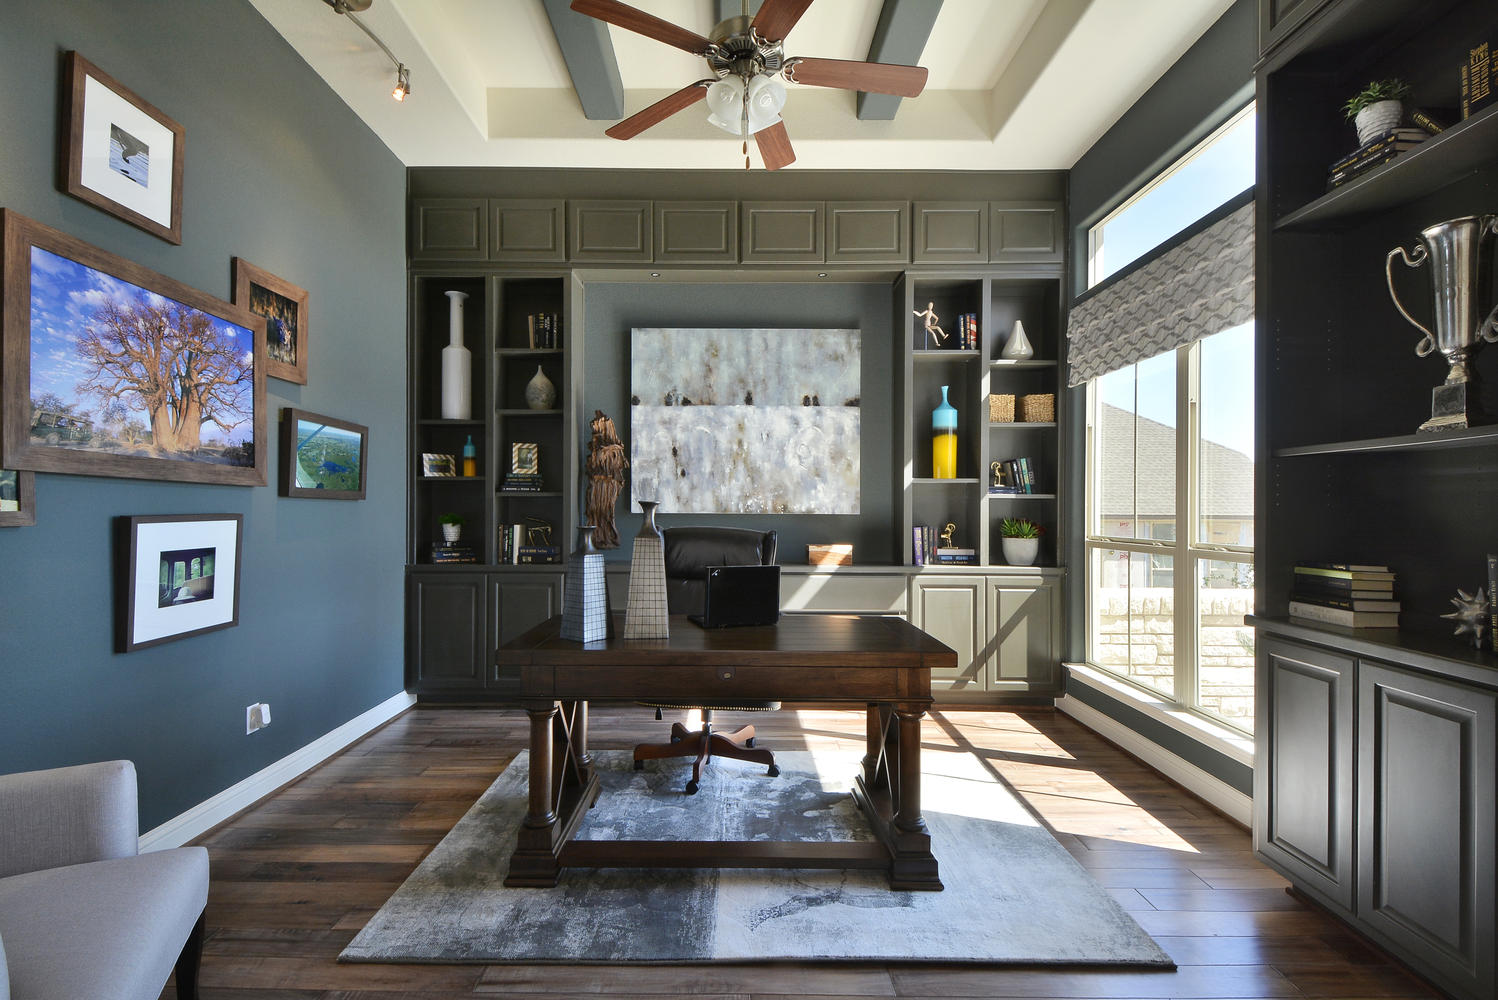 Burrows Cabinets' study with Umber gray cabinets